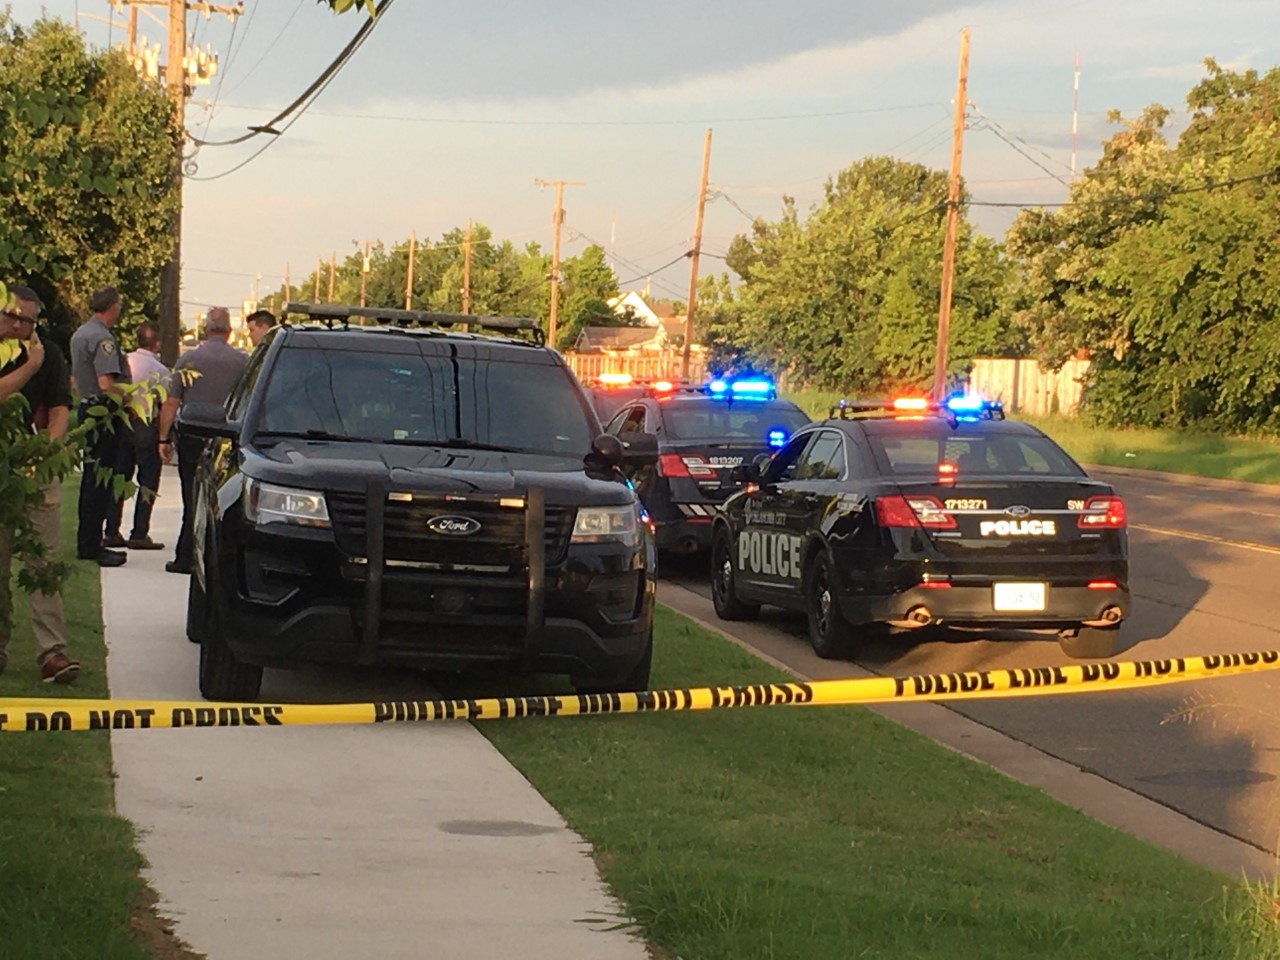 Oklahoma City police at the scene of a double homicide.